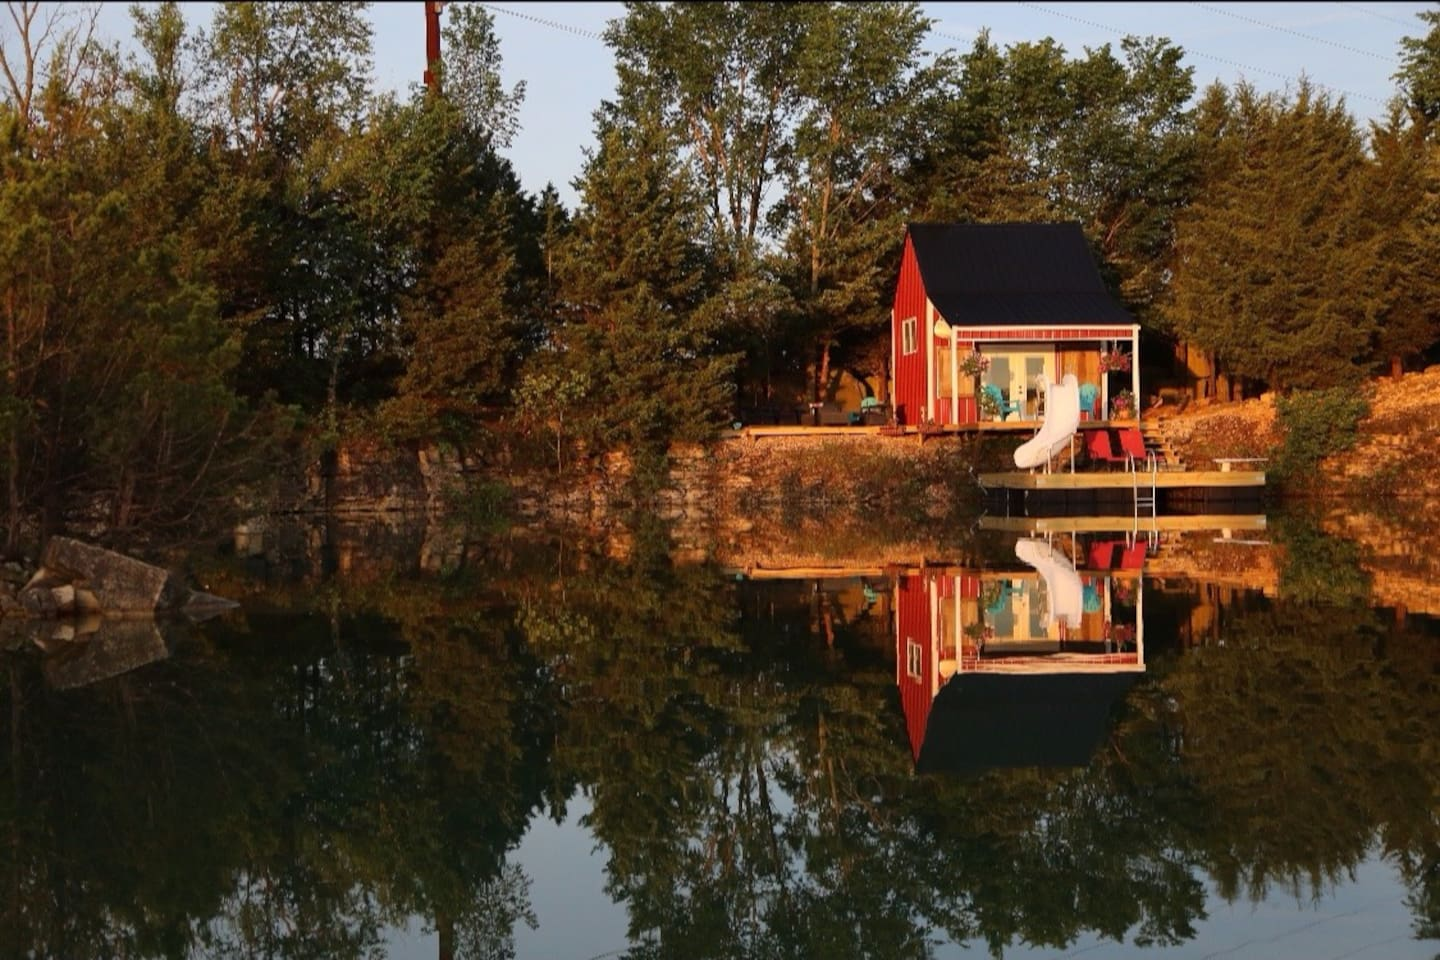 Tiny House on the Quarry